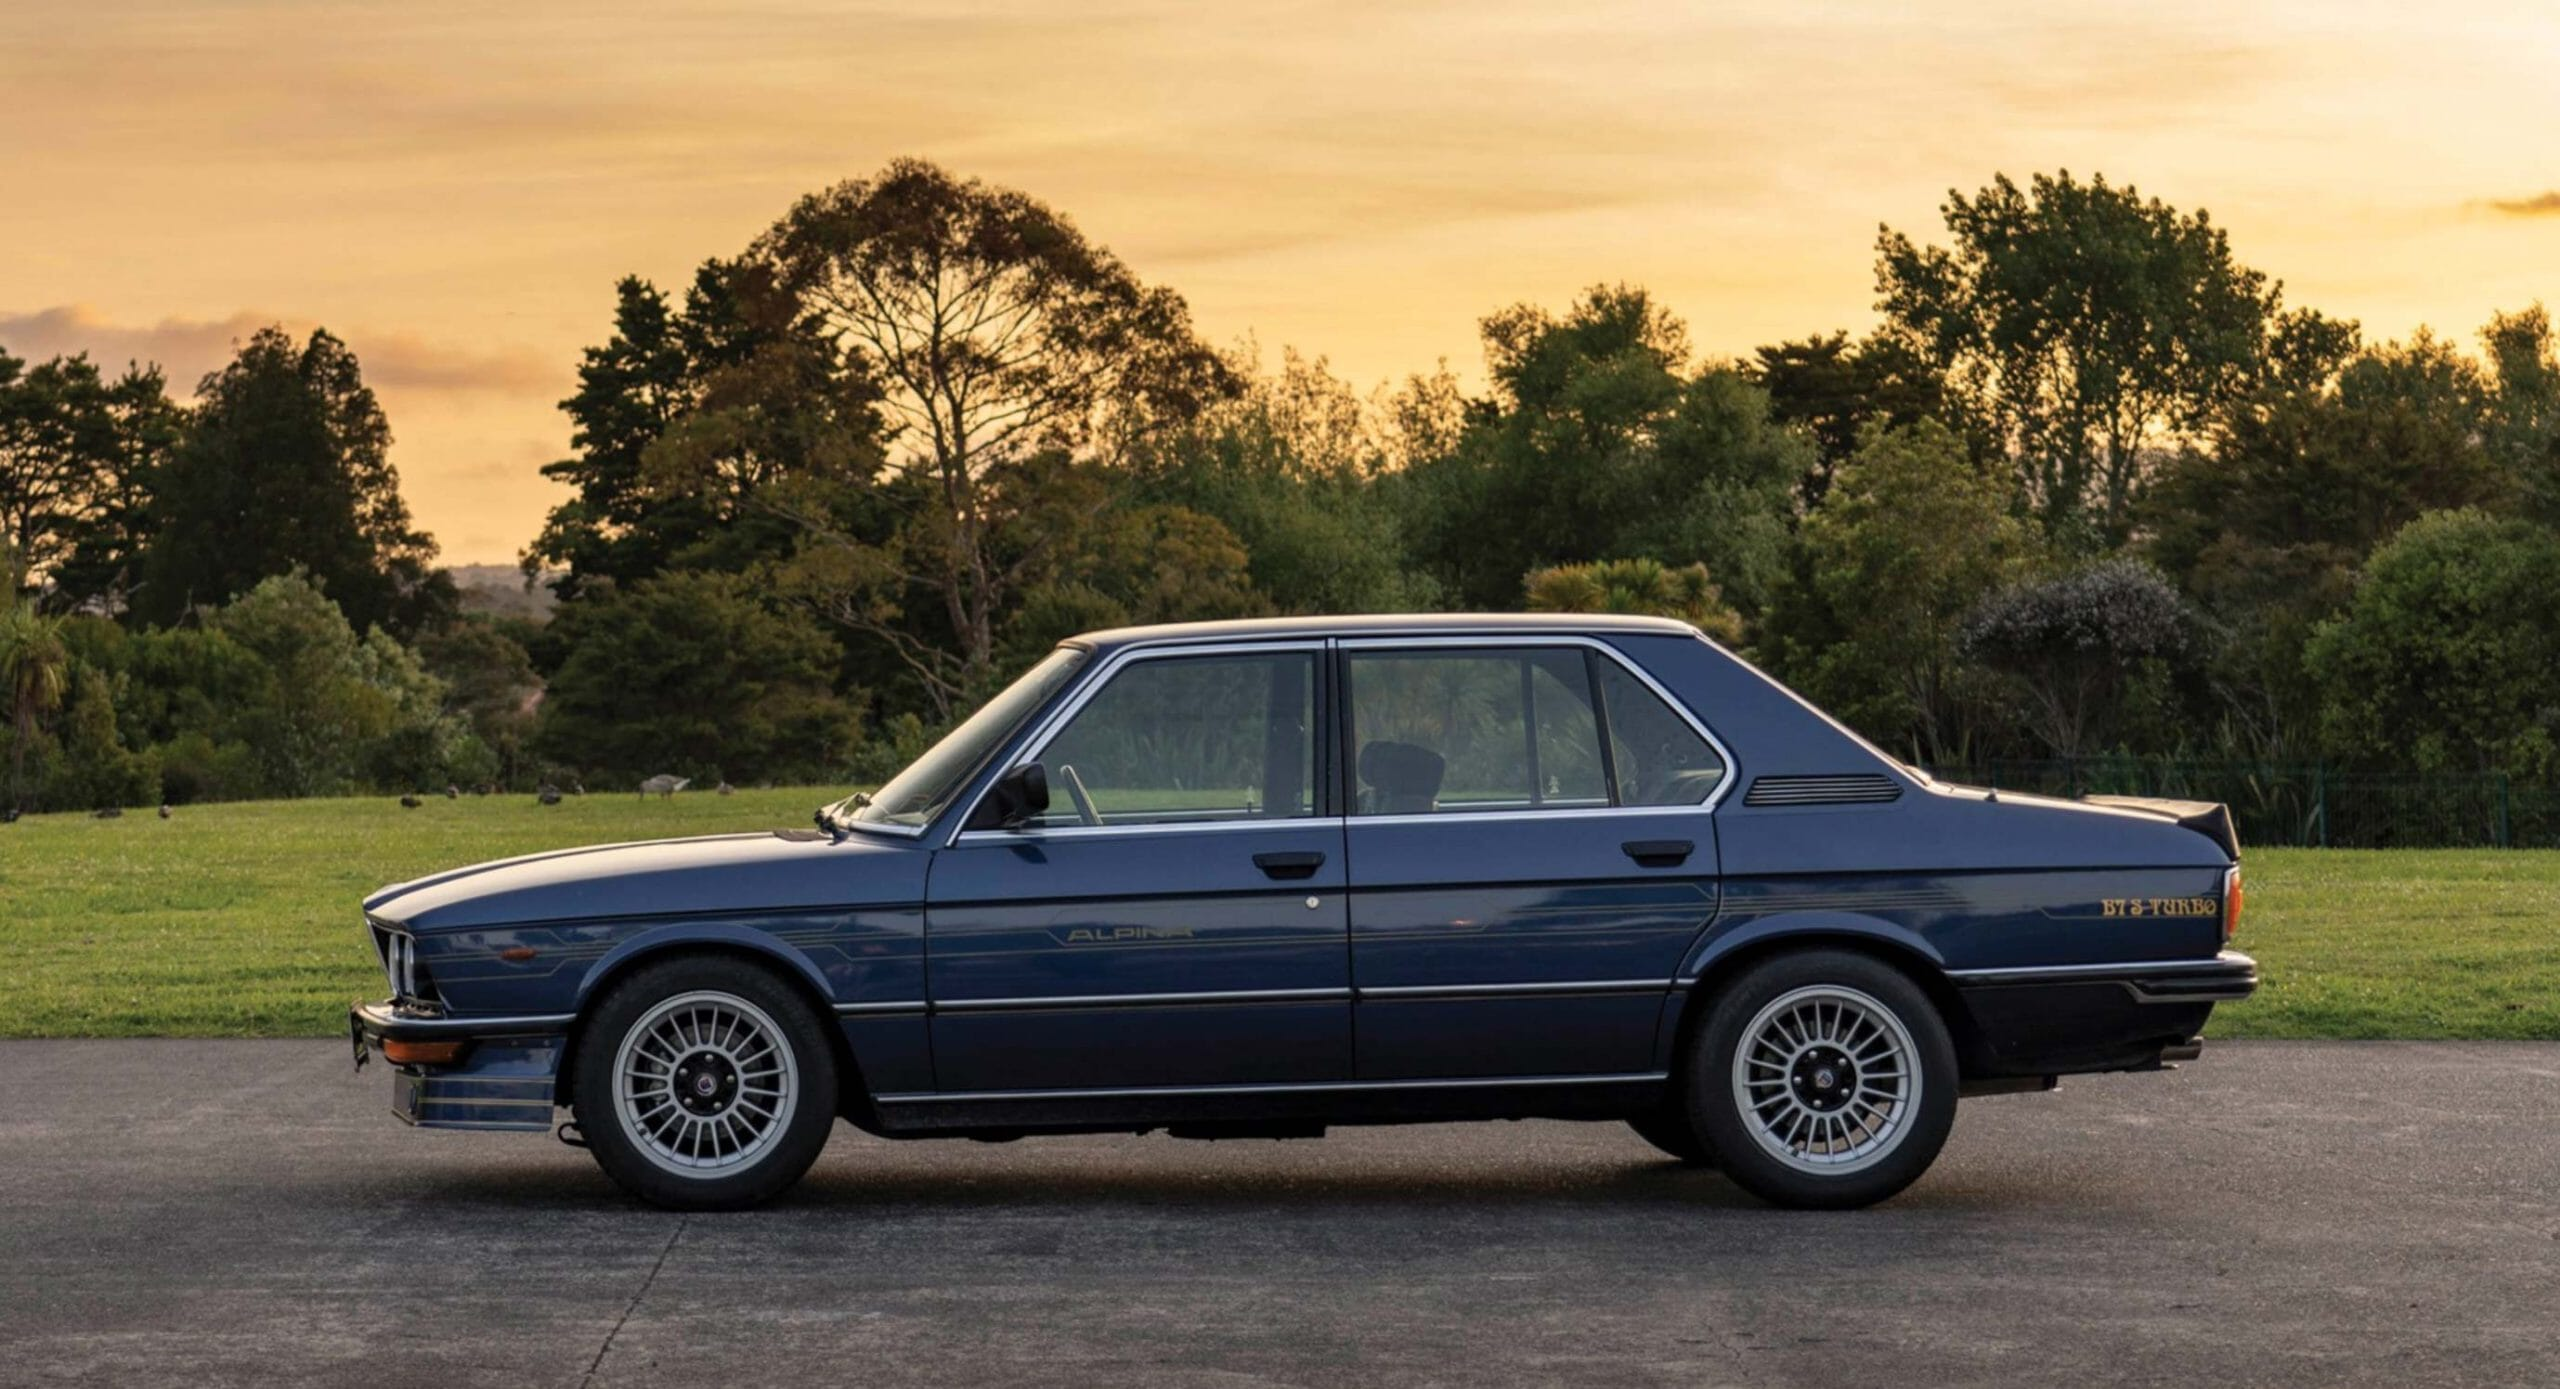 1982 BMW Alpina B7 S Turbo: A blast from the past